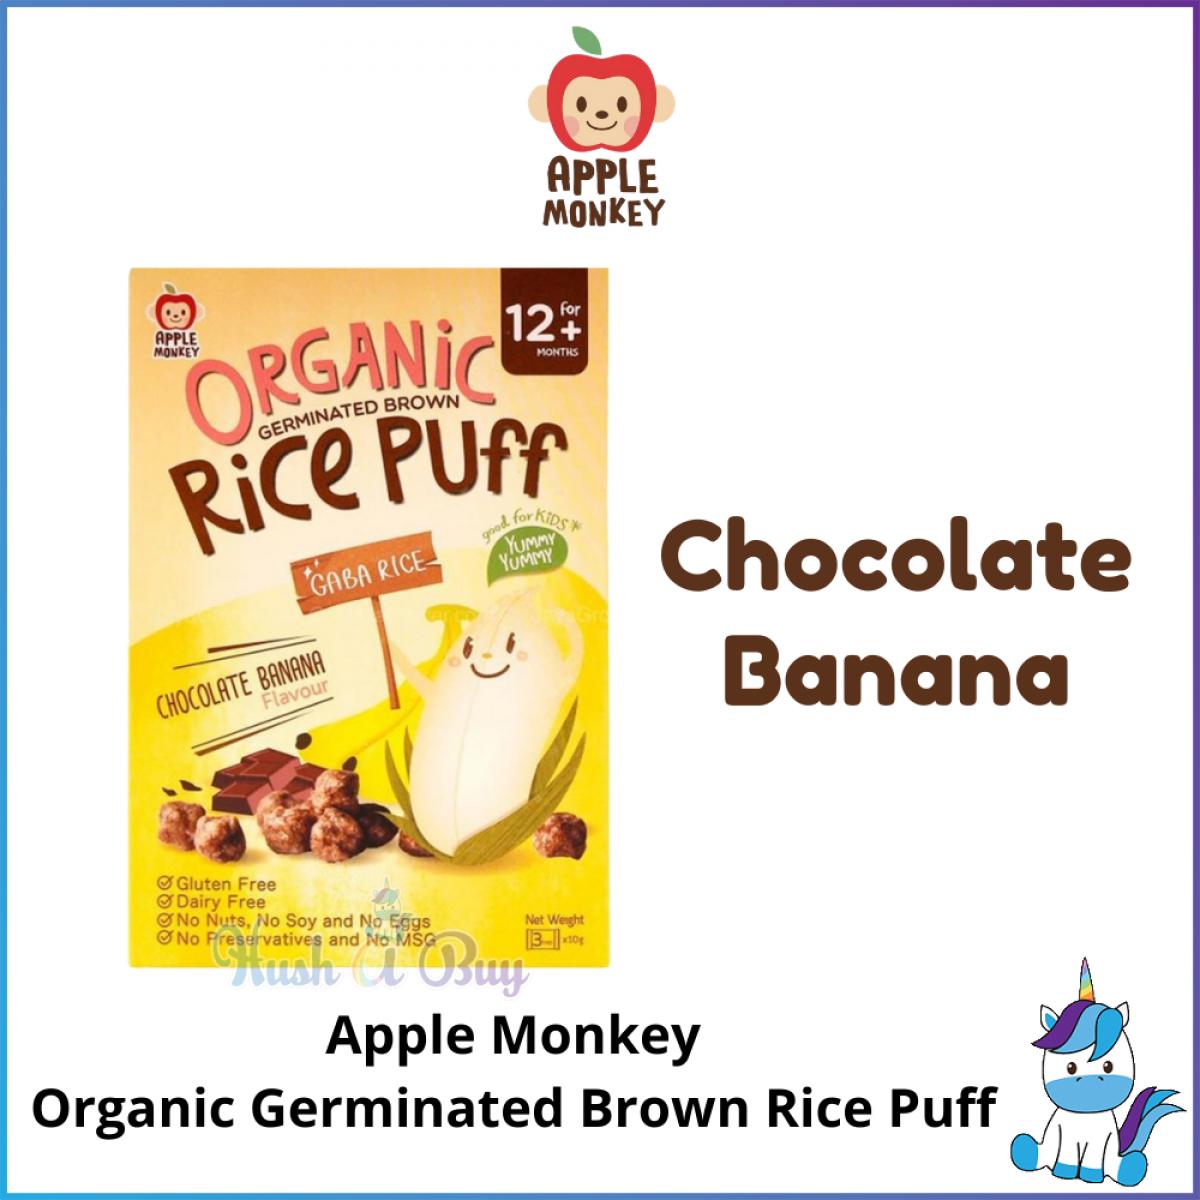 Apple Monkey Organic Germinated Brown Rice Puffs - Baby Snacks and Foods - Suitable for 12 Months Old and Above